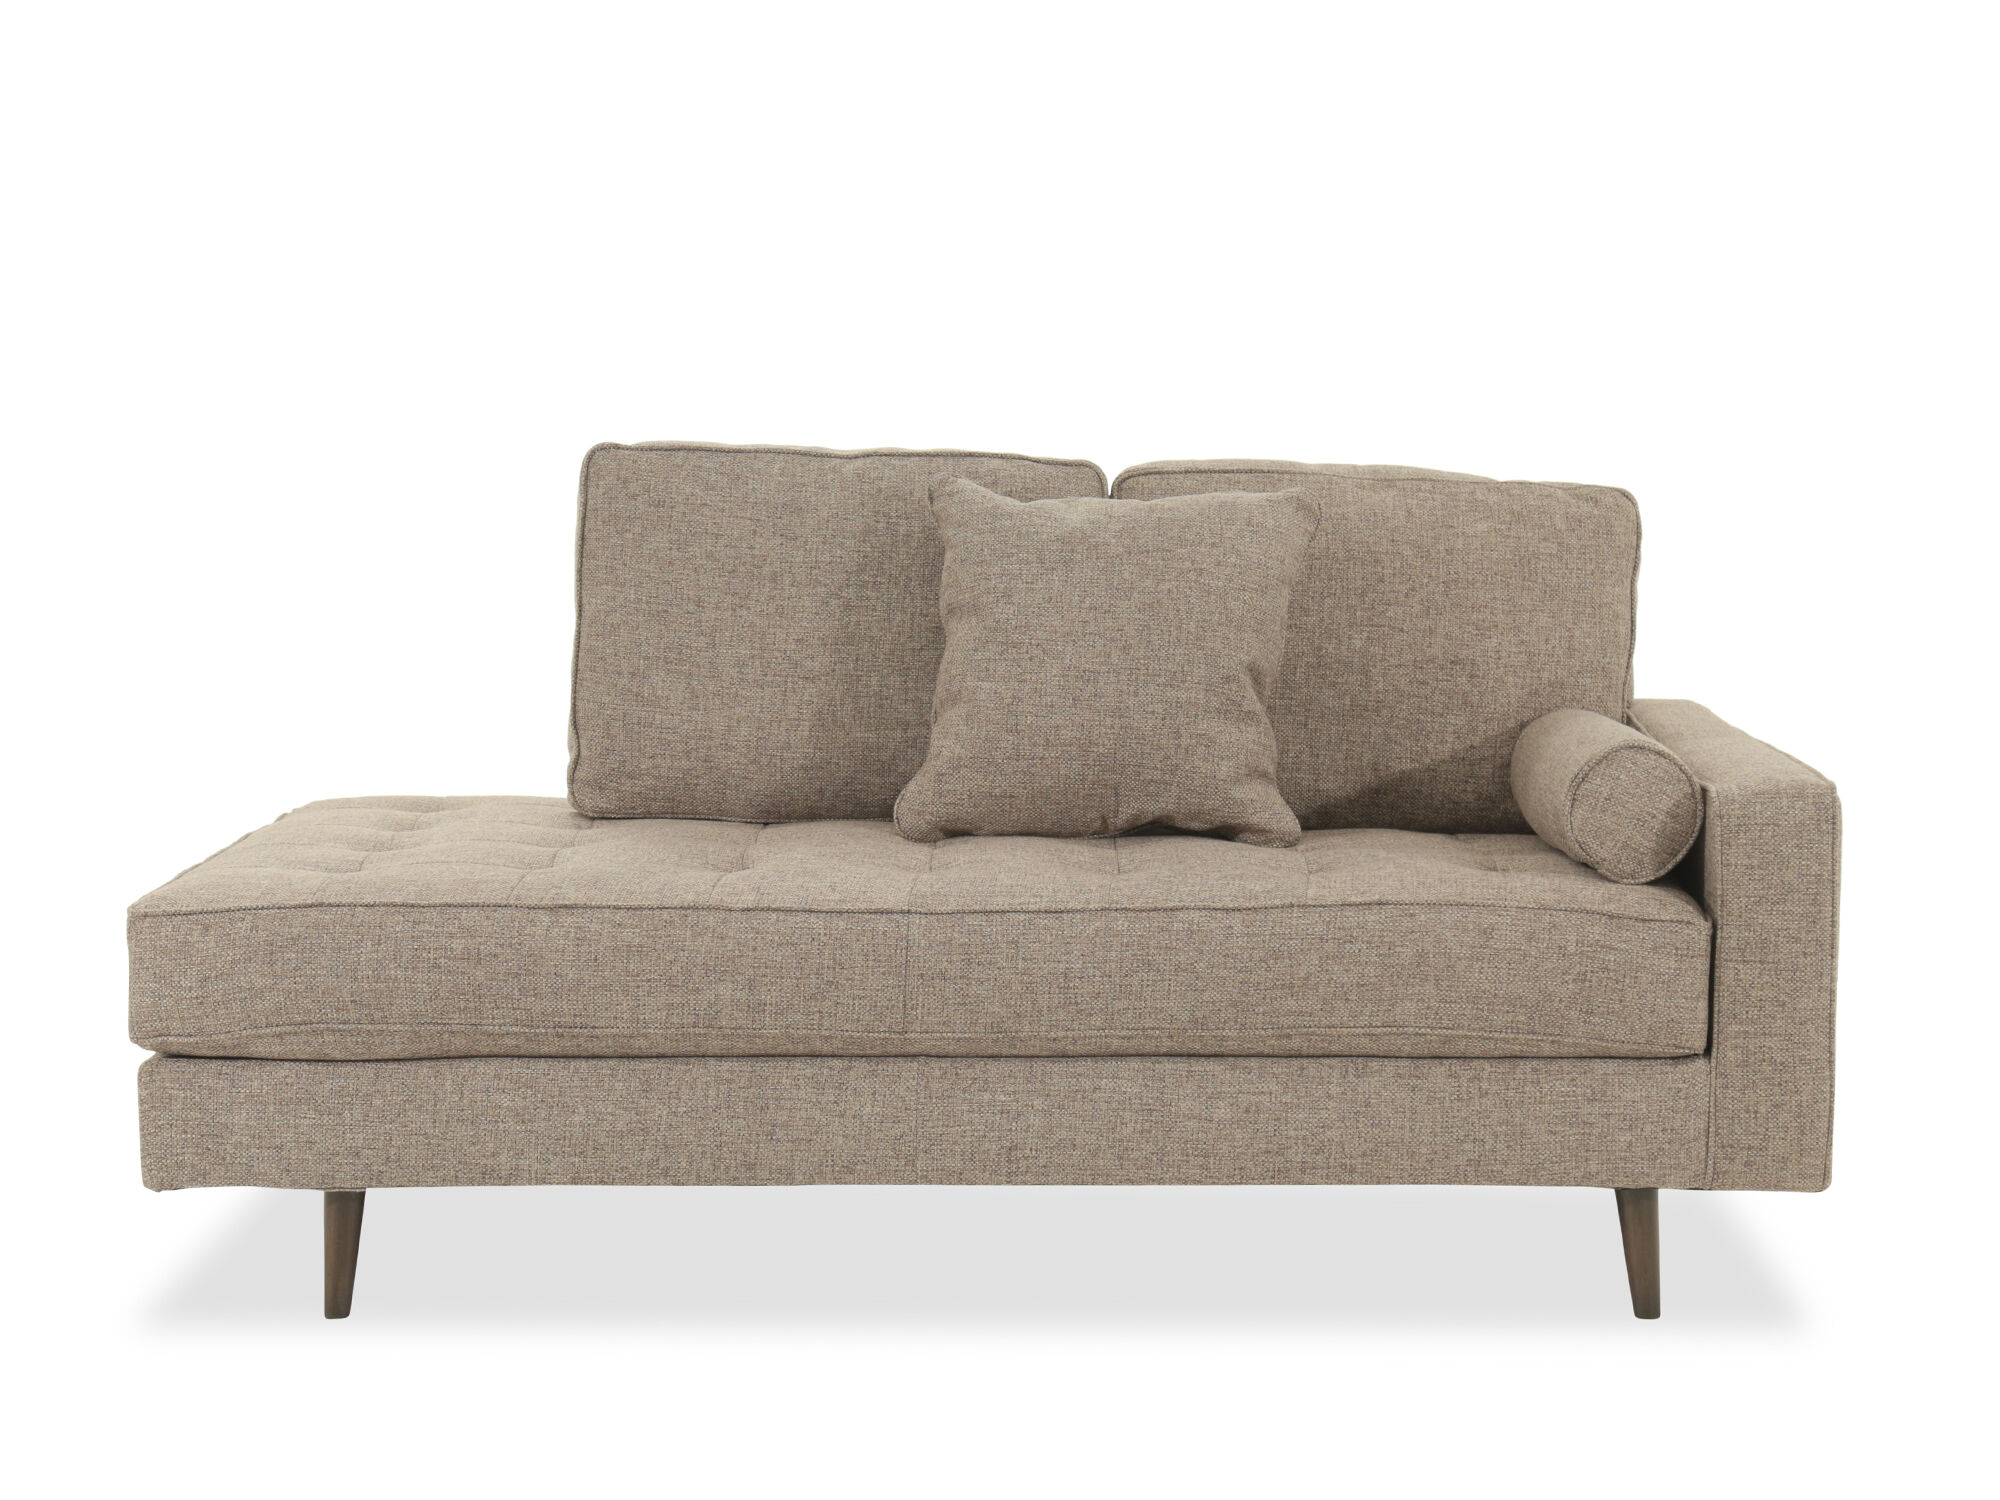 Tufted Mid Century Modern Right Arm Chaise In Jute Mathis Brothers